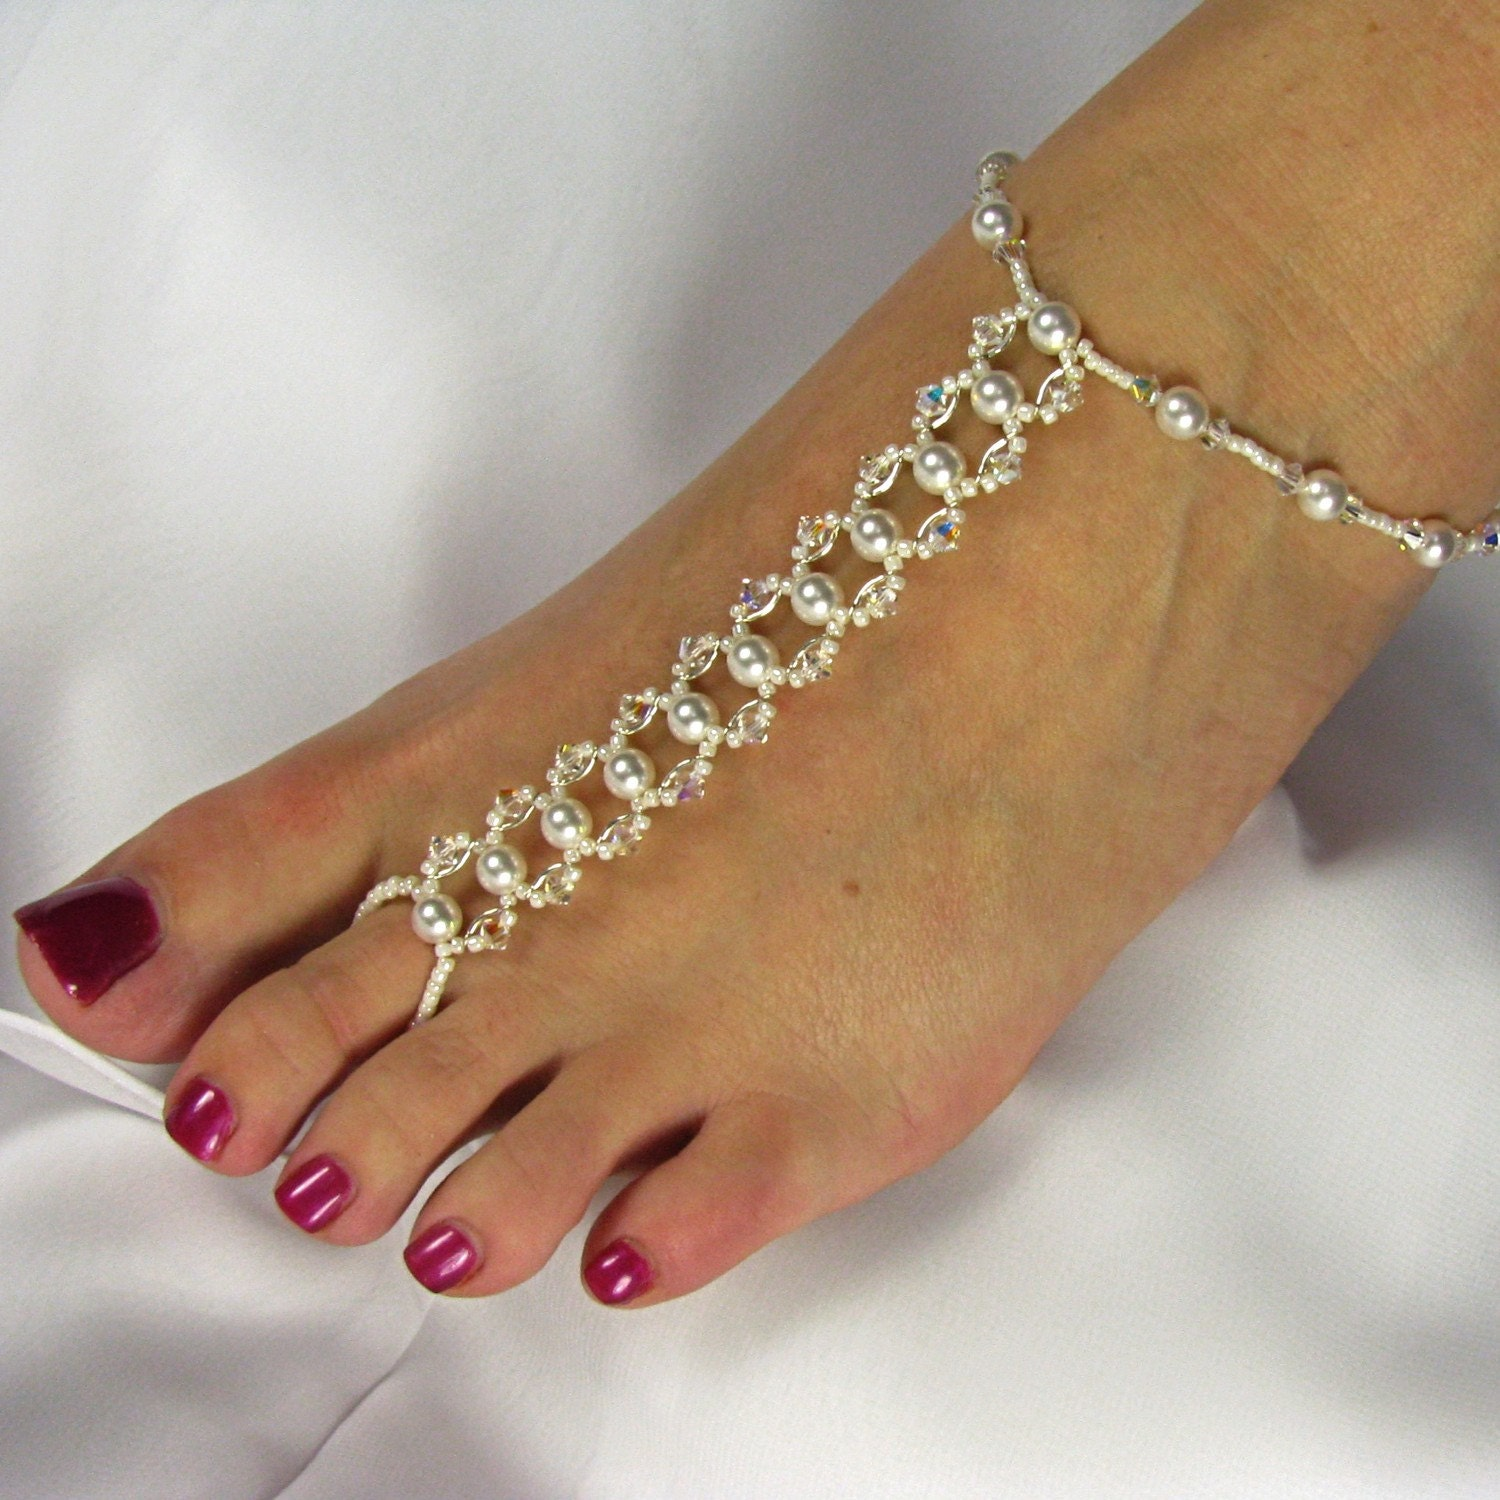 Bridal Foot Jewelry Barefoot Sandals Foot By Twobewedjewelry